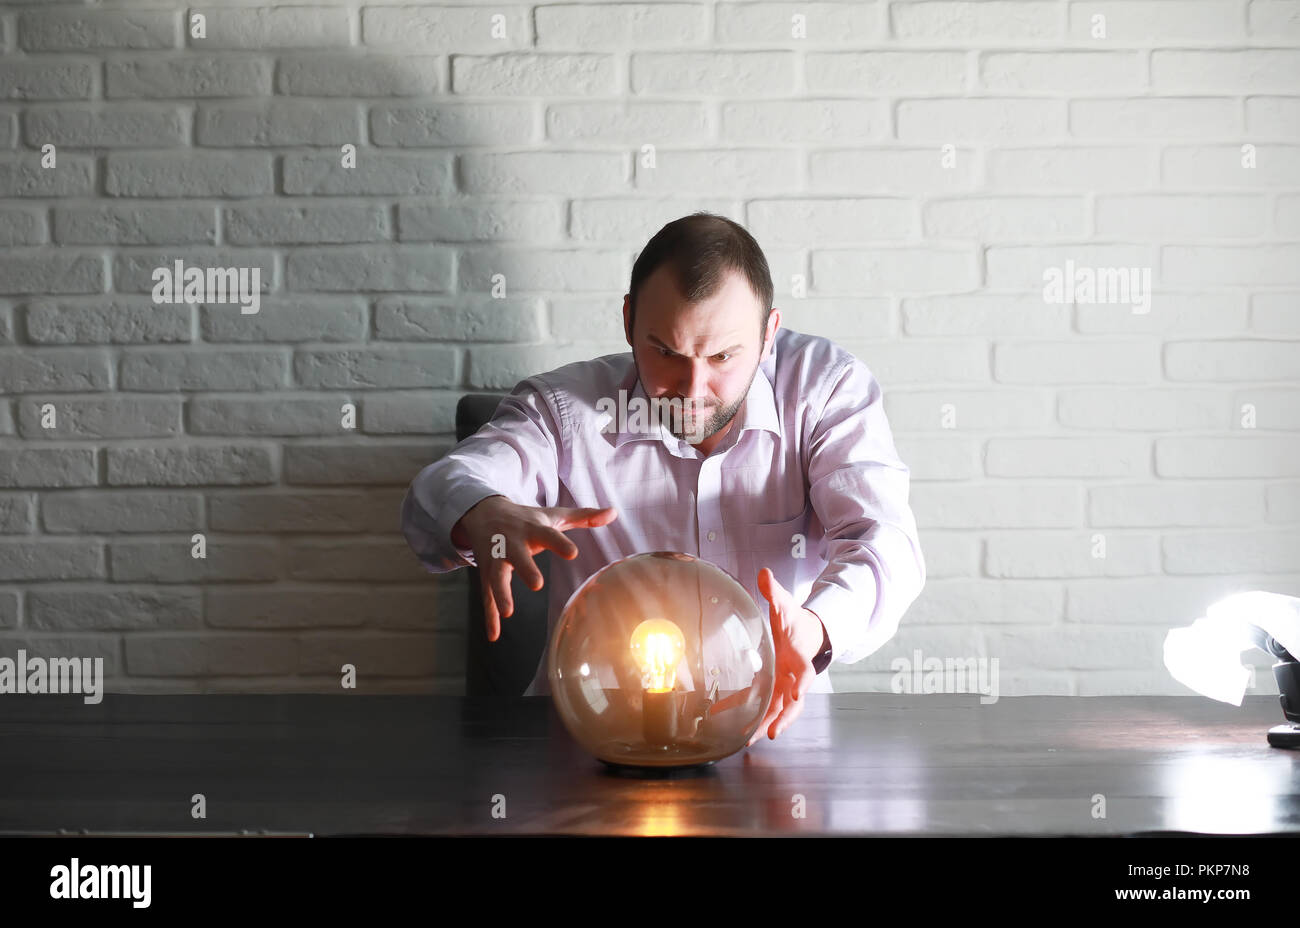 A man with a fortune teller ball - Stock Image